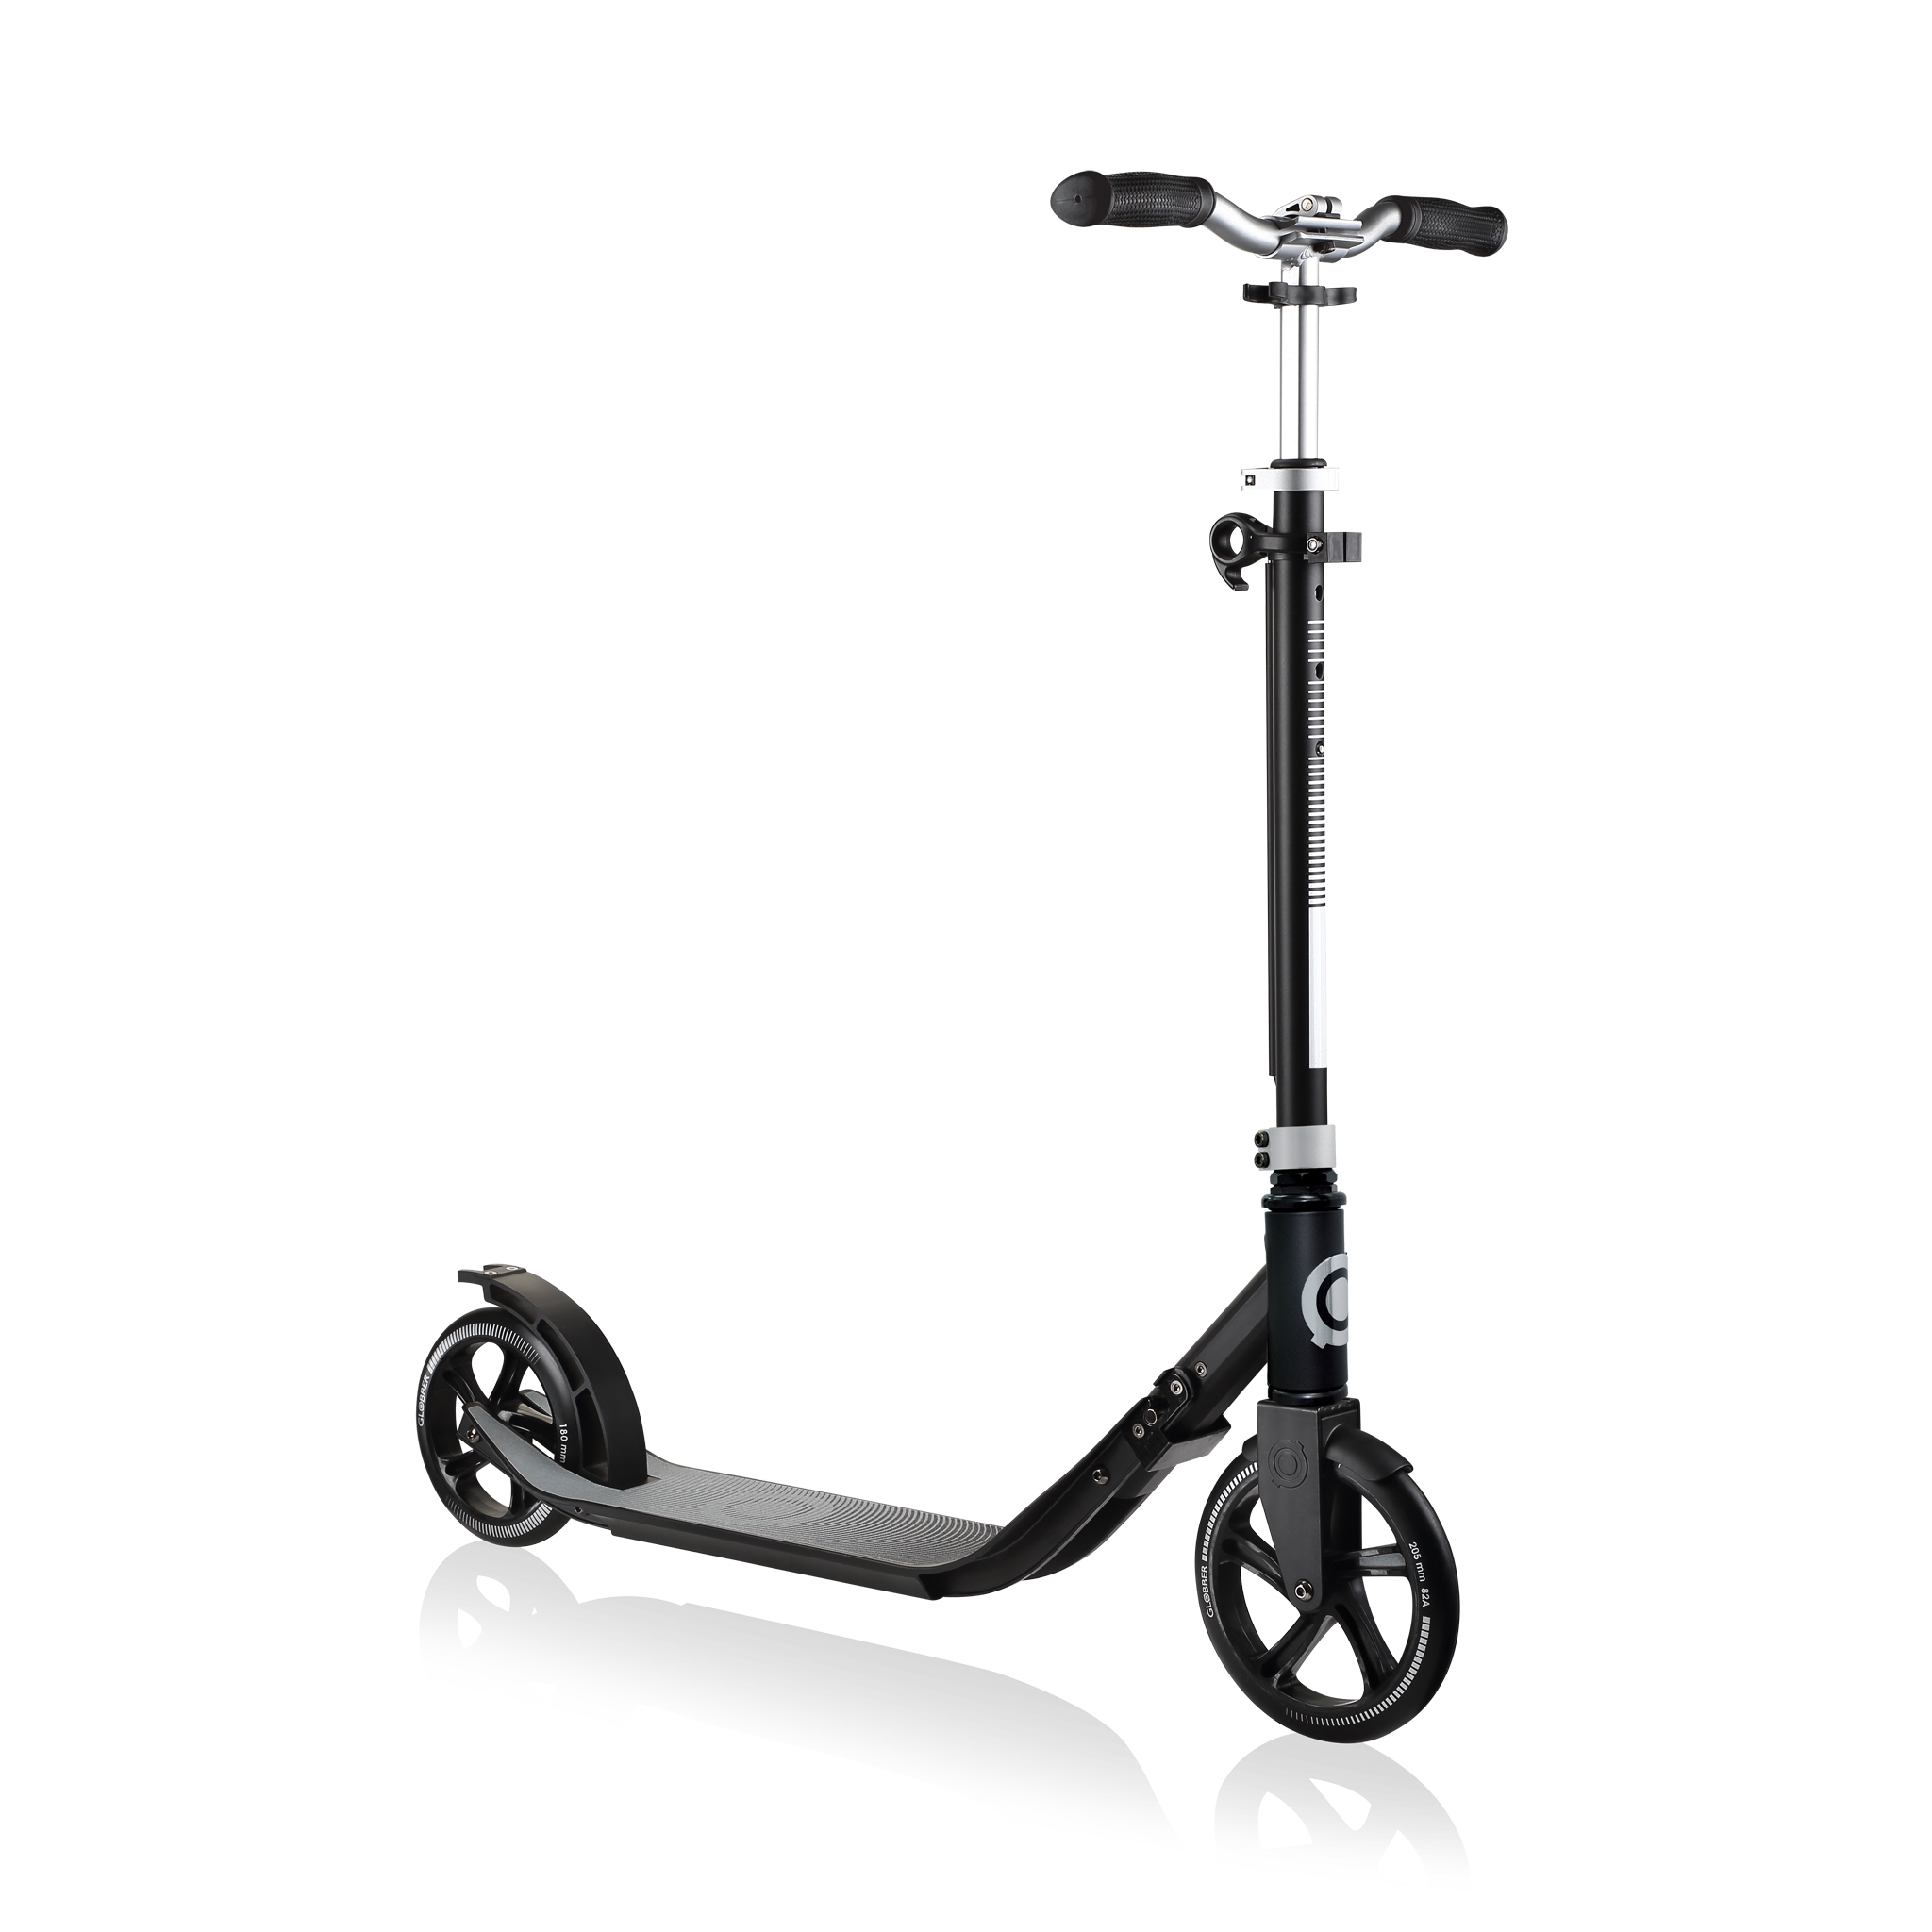 Globber-ONE-NL-205-180-DUO-2-wheel-adjustable-scooter-for-adults-lead-grey 0